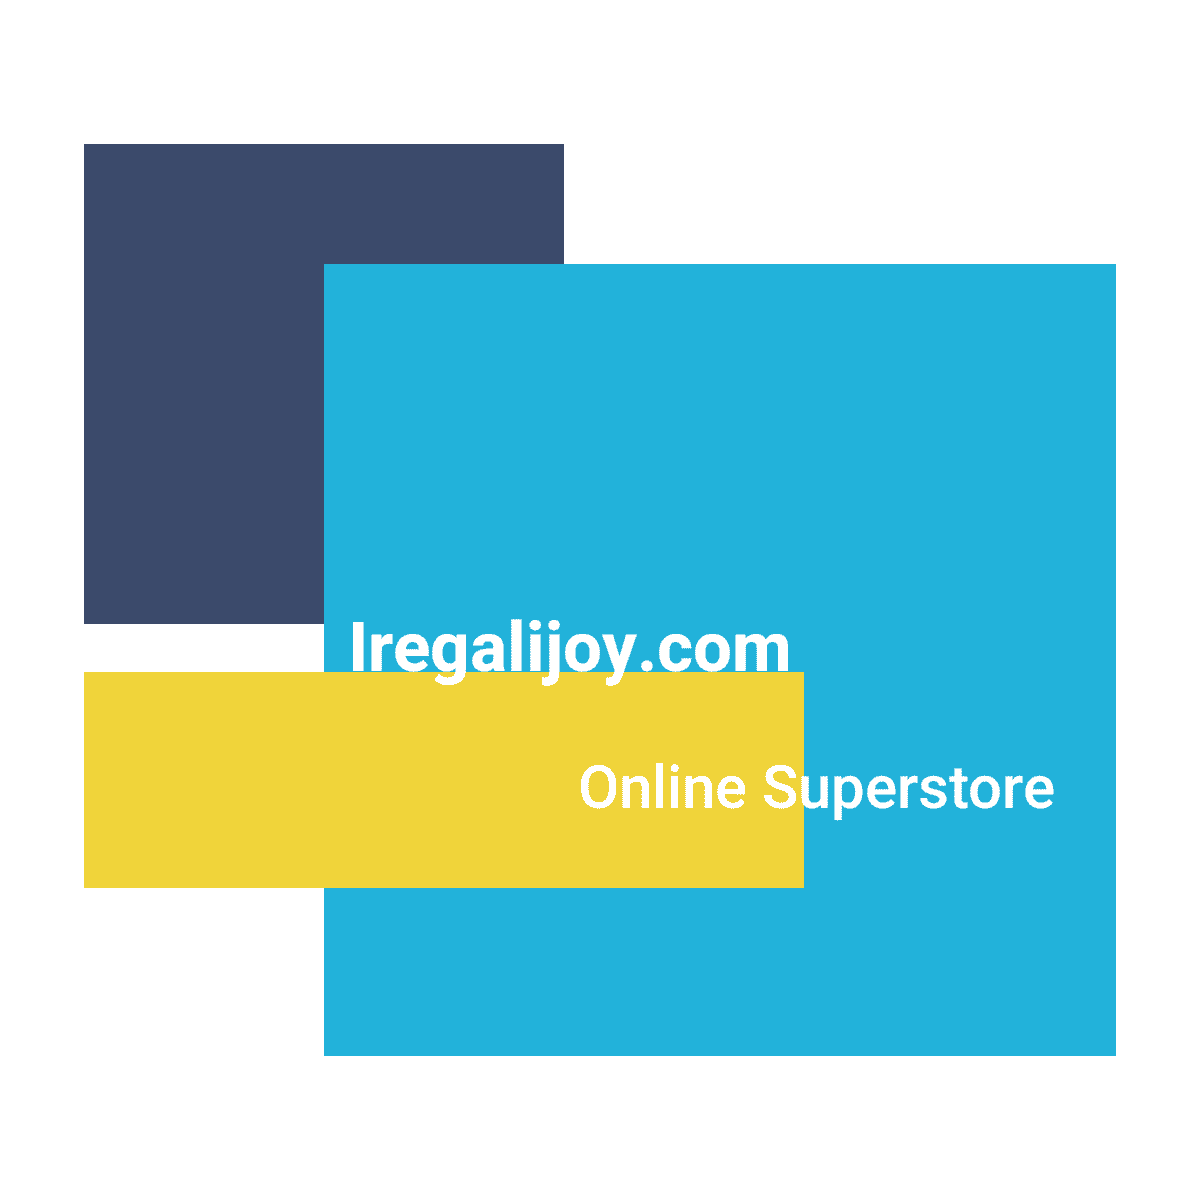 Featured Products - iregalijoy.com